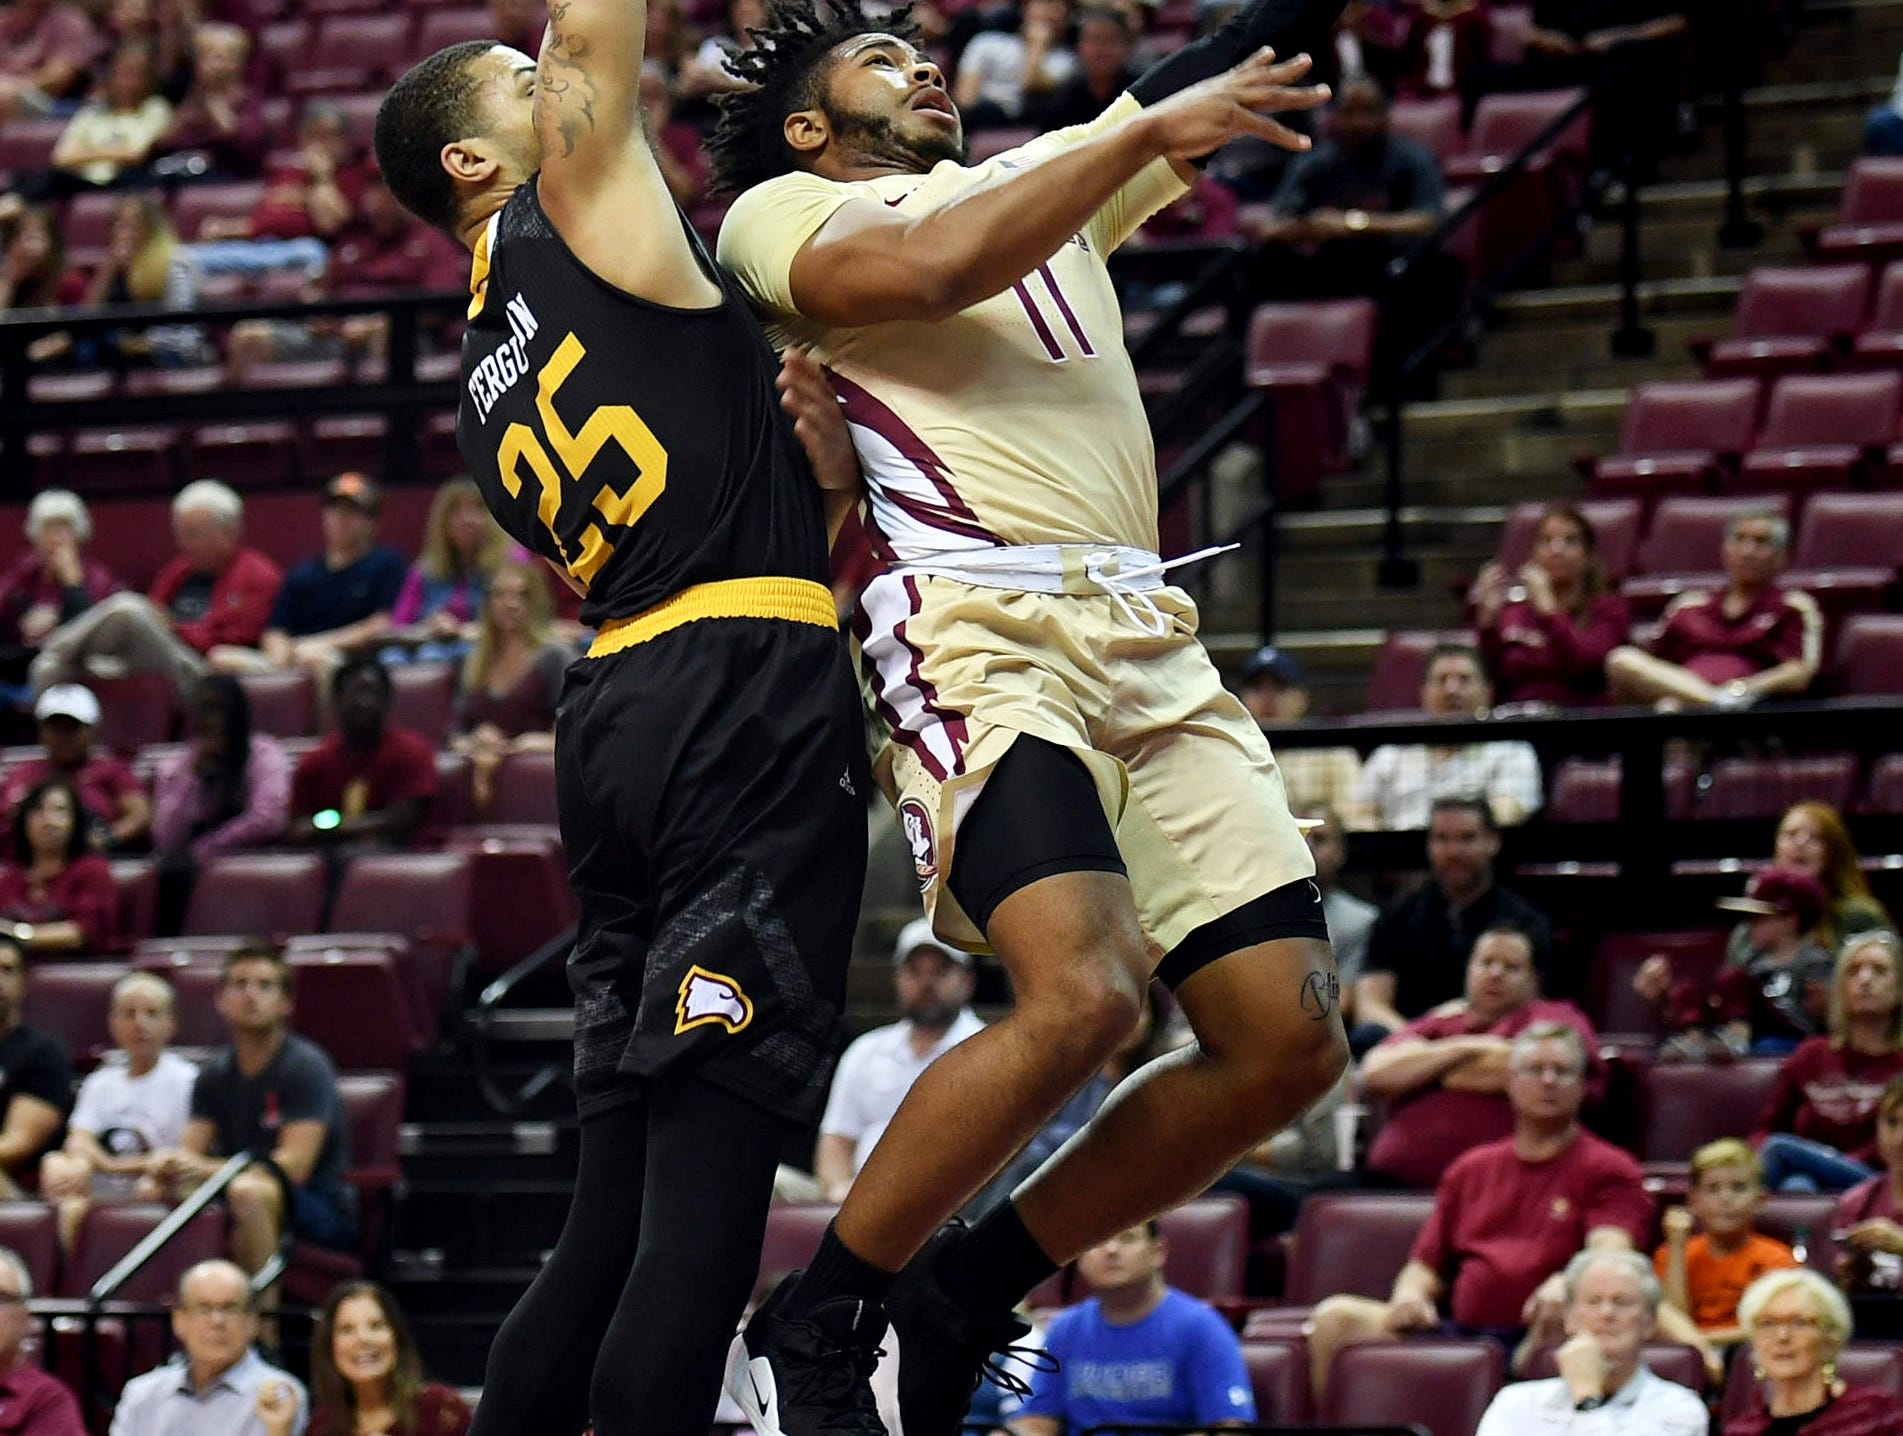 Jan 1, 2019; Tallahassee, FL, USA; Florida State Seminoles guard David Nichols (11) shoots the ball past Winthrop Eagles forward Josh Ferguson (25) during the first half at Donald L. Tucker Center. Mandatory Credit: Melina Myers-USA TODAY Sports